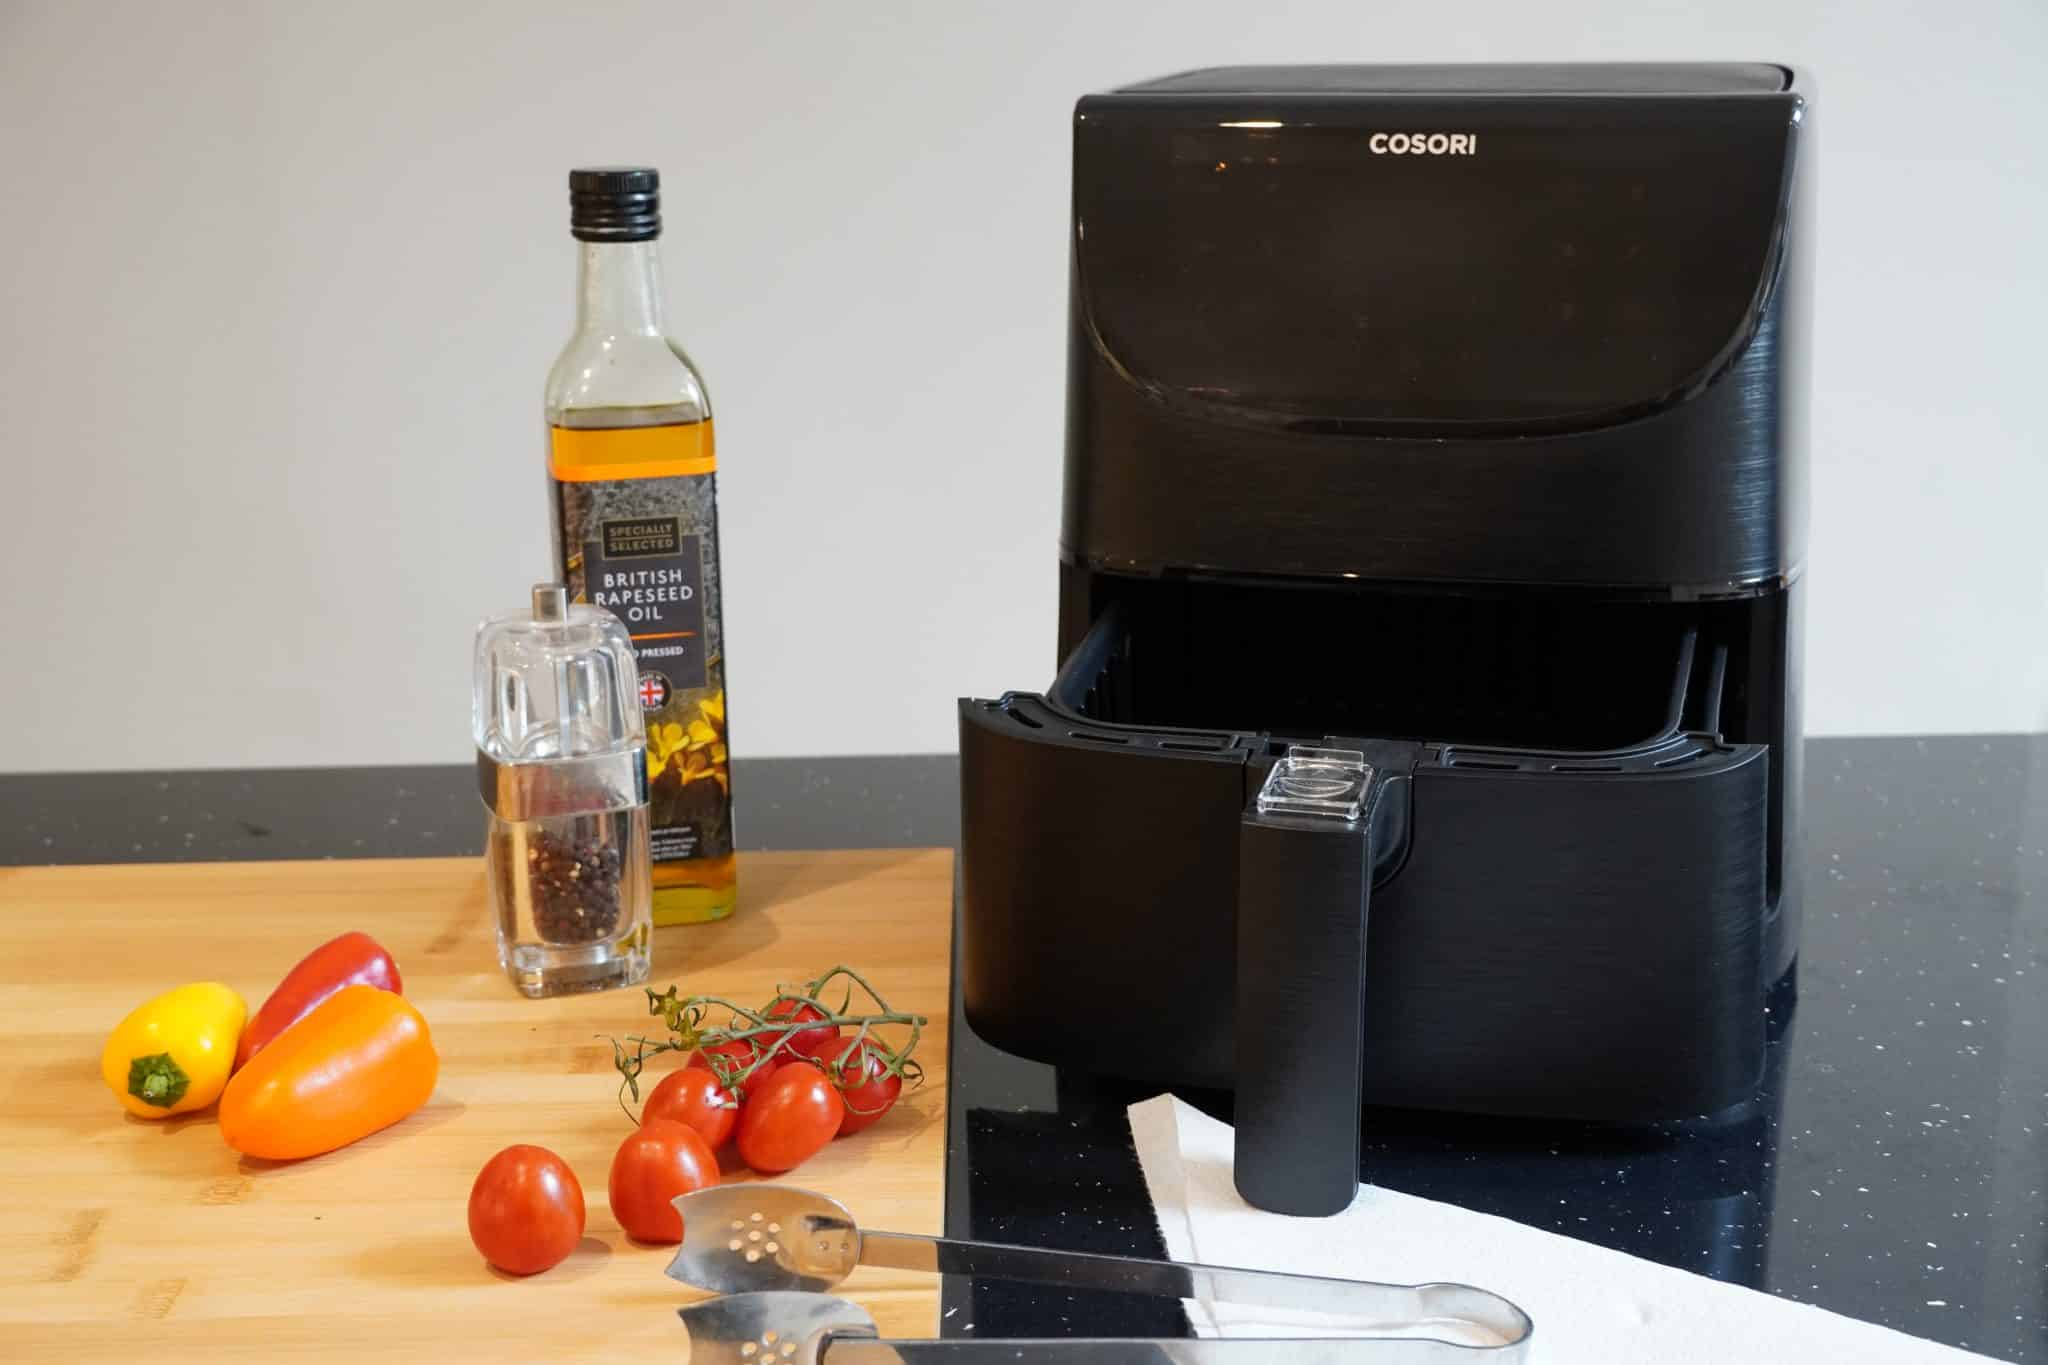 How To Reheat Pizza In An Air Fryer - Here's What You Need To Know